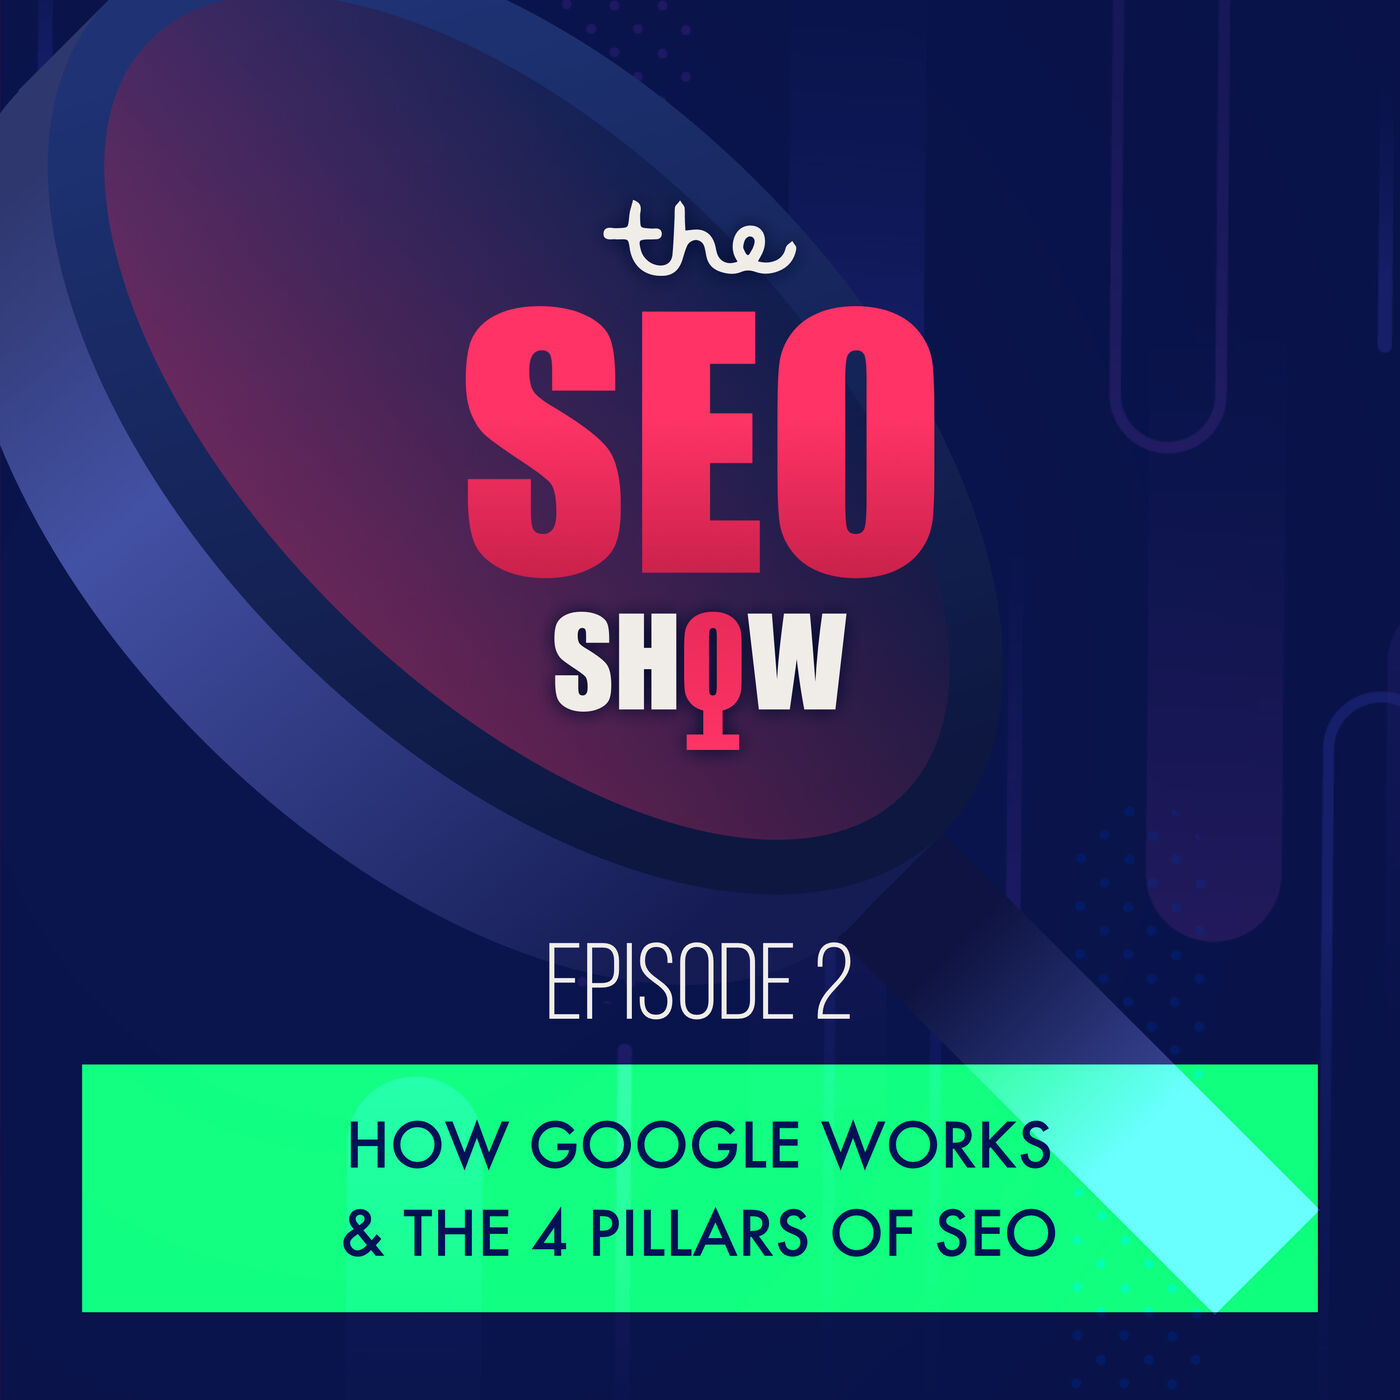 How Google Works & The 4 Pillars of SEO - Episode 002